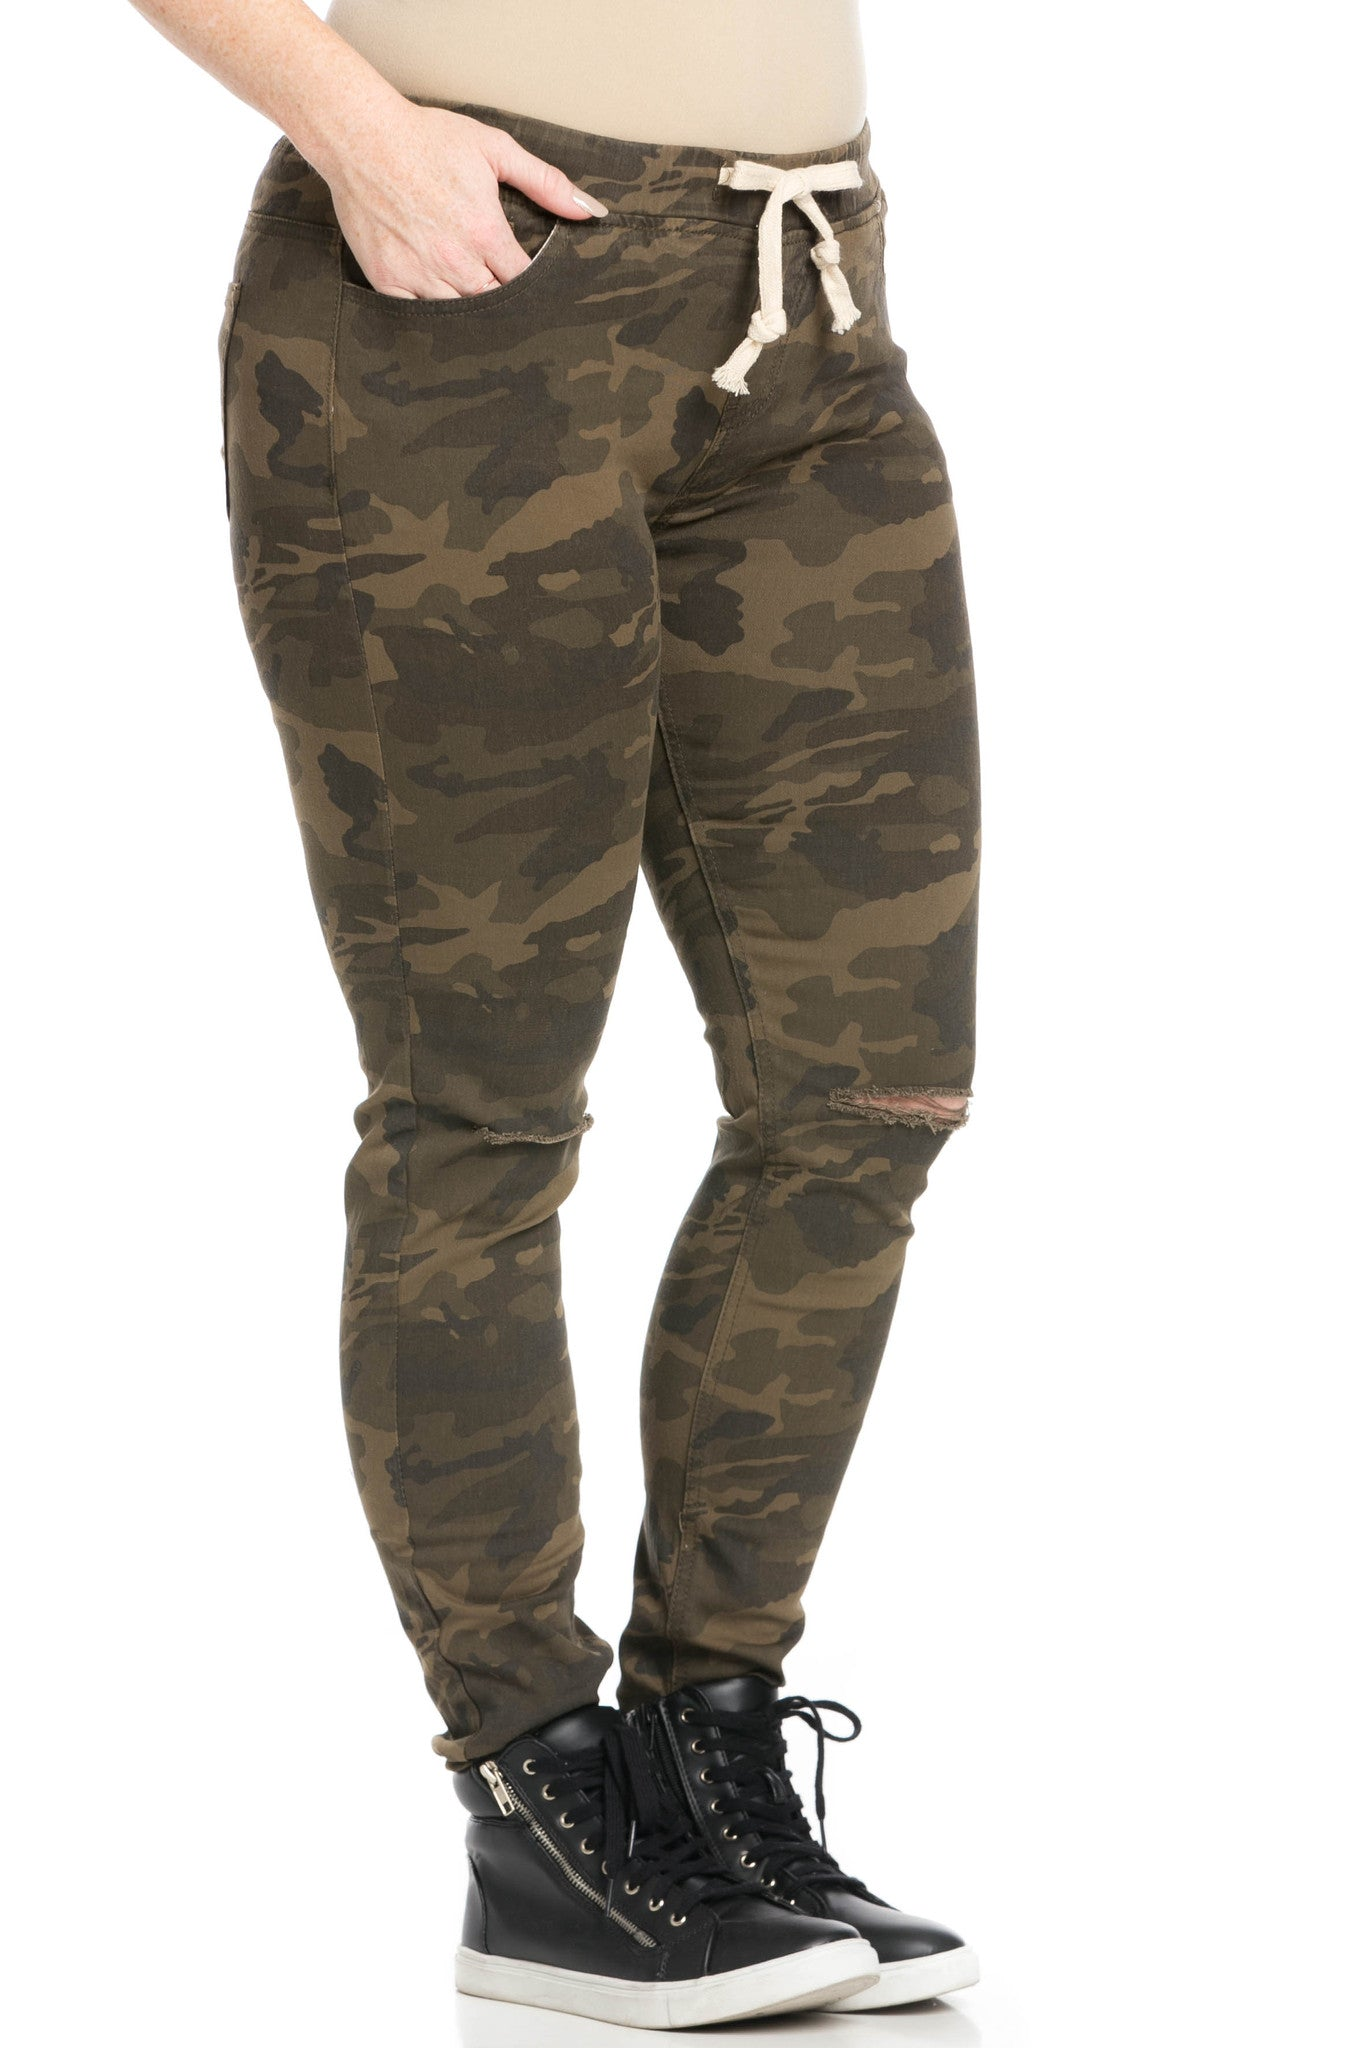 Destroyed Camouflage Skinny Jogger Jeans - Pants - My Yuccie - 11